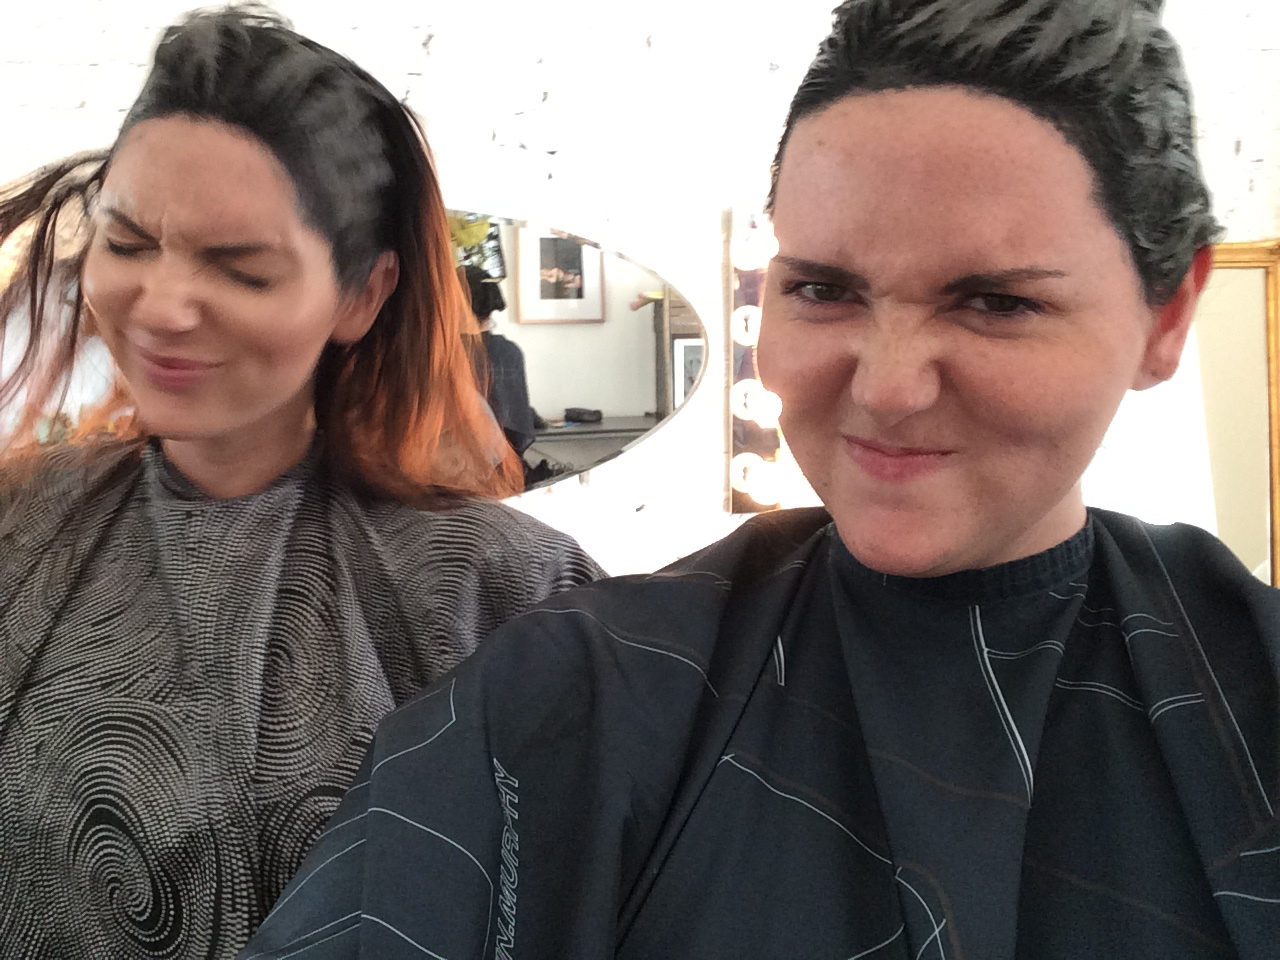 Sisters who do hair together….look great. August 29, 2015579